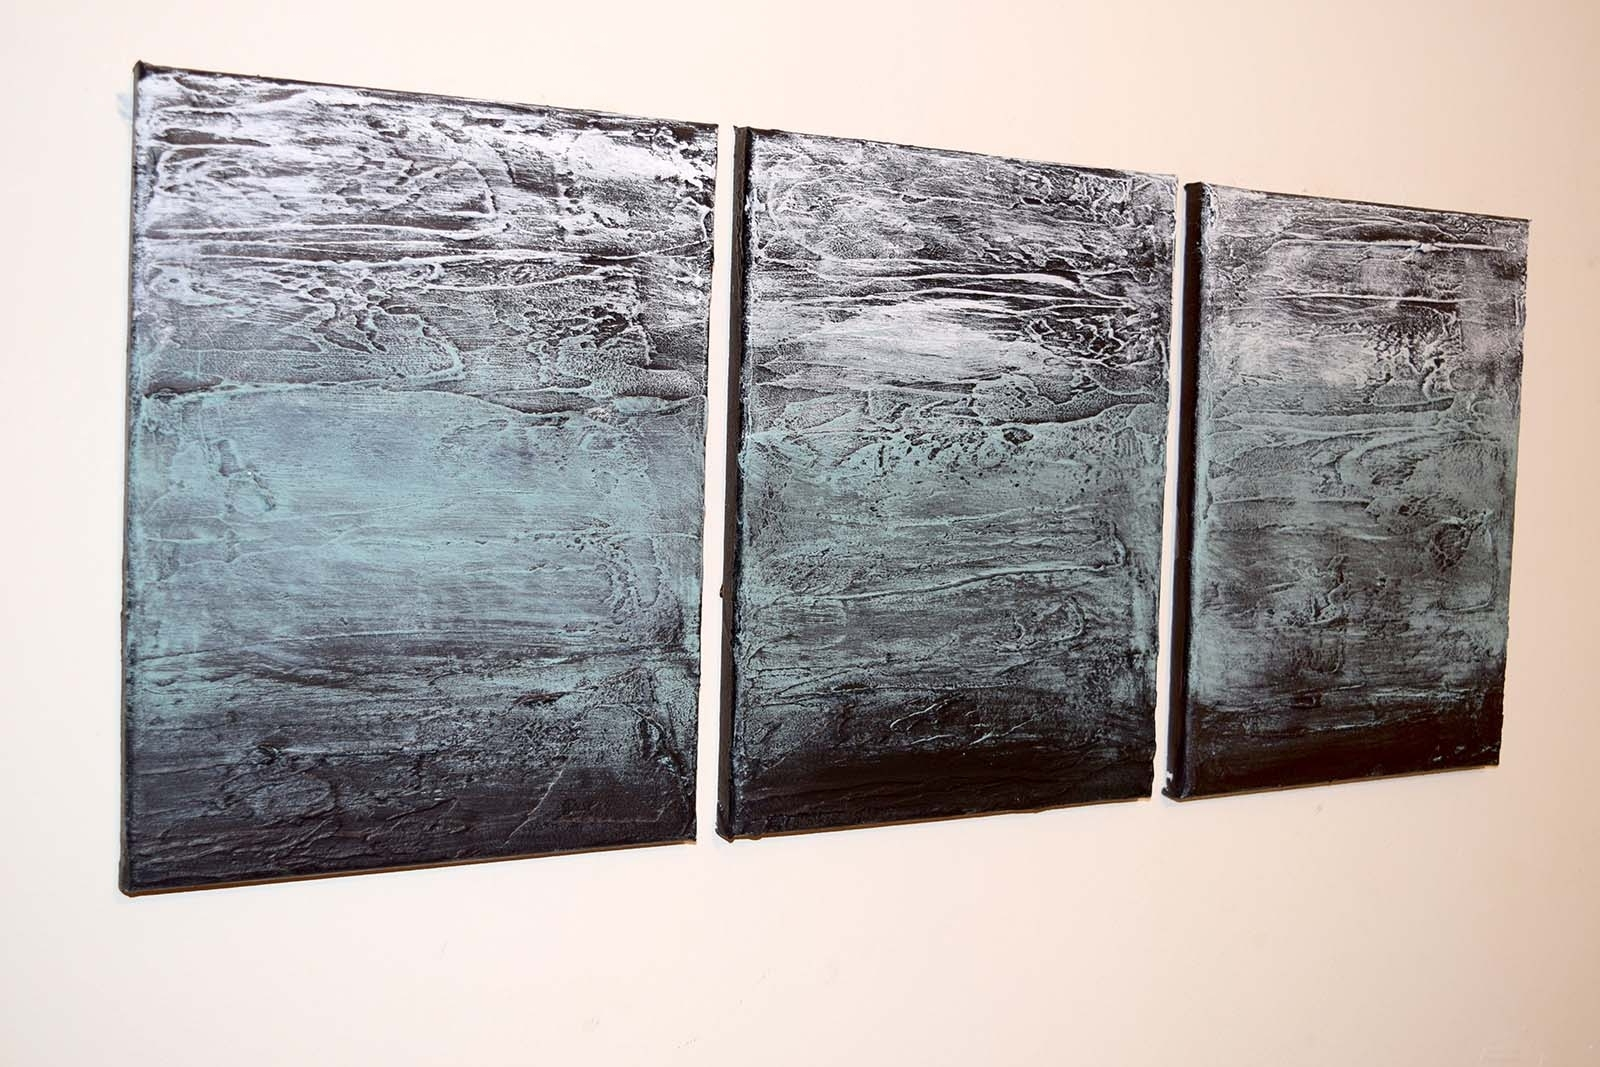 "Latest Triptych Wall Art Regarding Turquoise Triptych"" Abstract Artists Triptych Art On Canvas (View 8 of 15)"